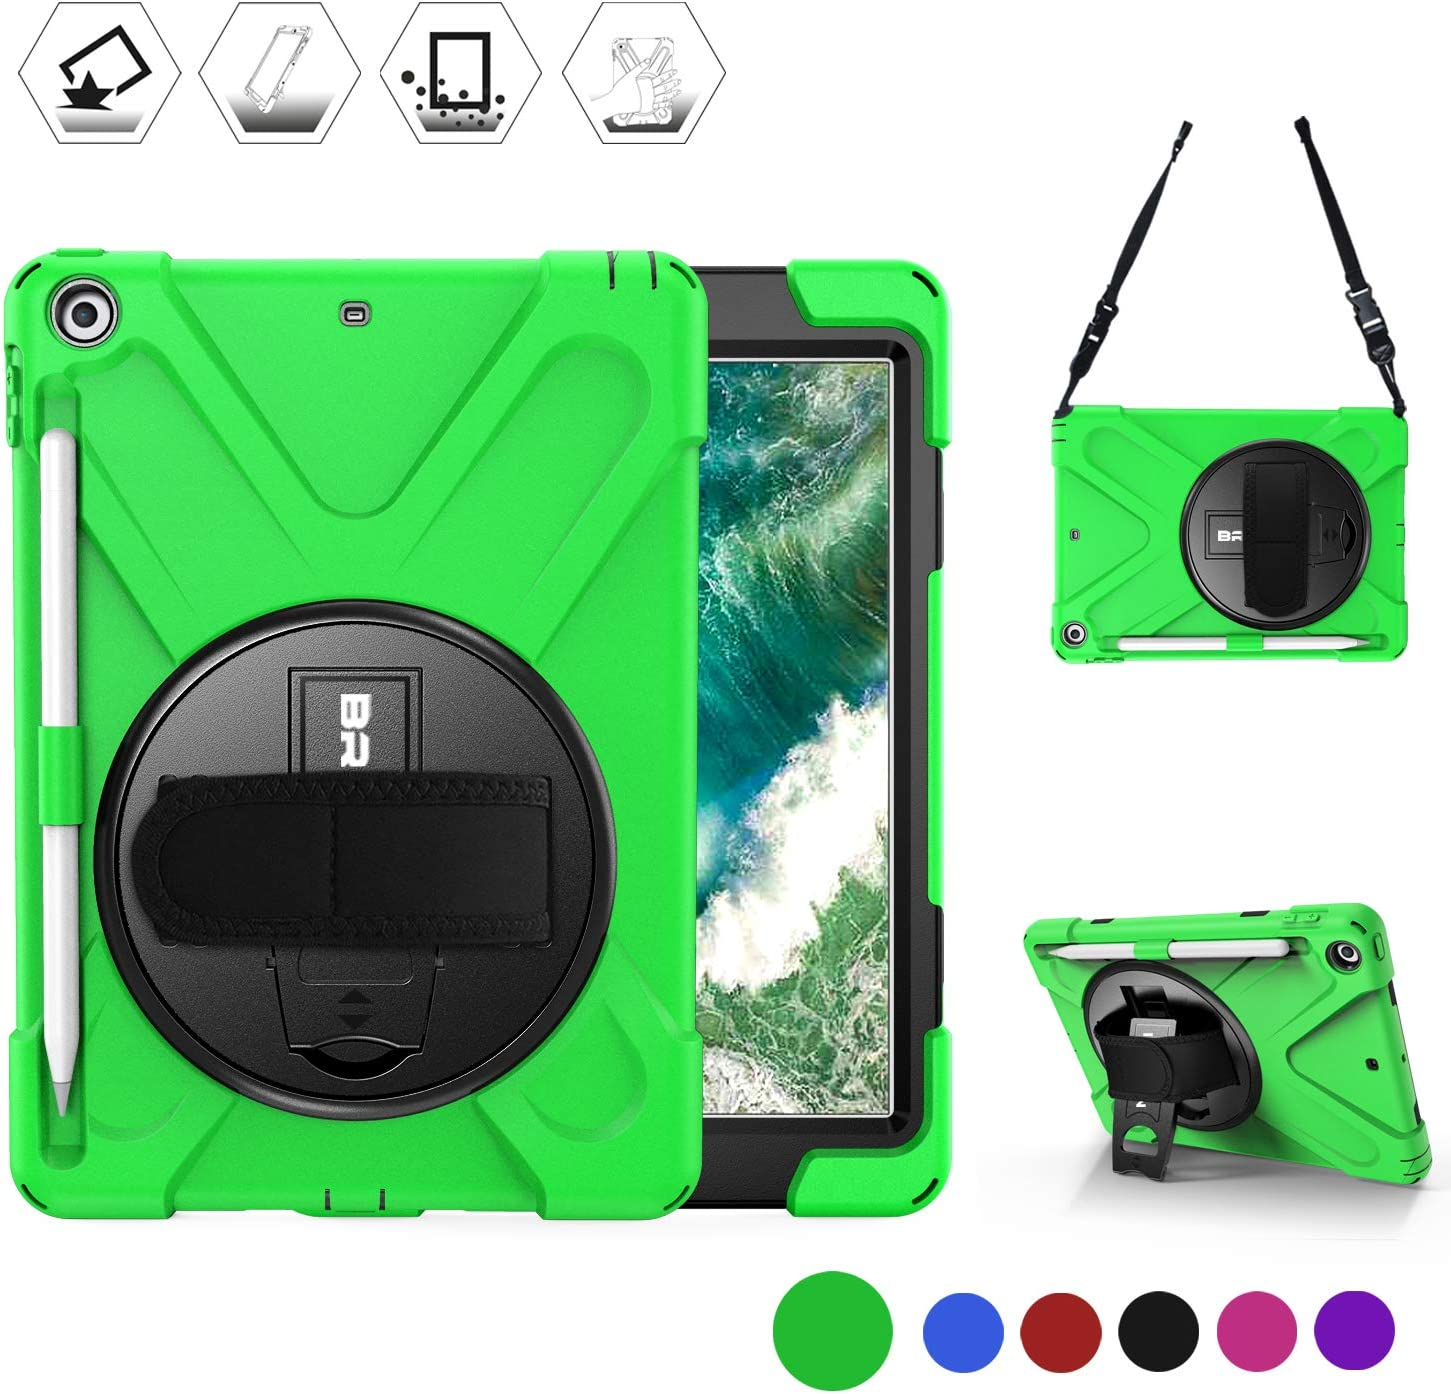 BRAECN New iPad 6th/ 5th Generation Case, Protective Shock-Proof Silicone Case with Built-in Pencil Holder, 360 Degree Rotating Stand/Handle Strap, Shoulder Strap for iPad 9.7 Inch 2018 Model-Green